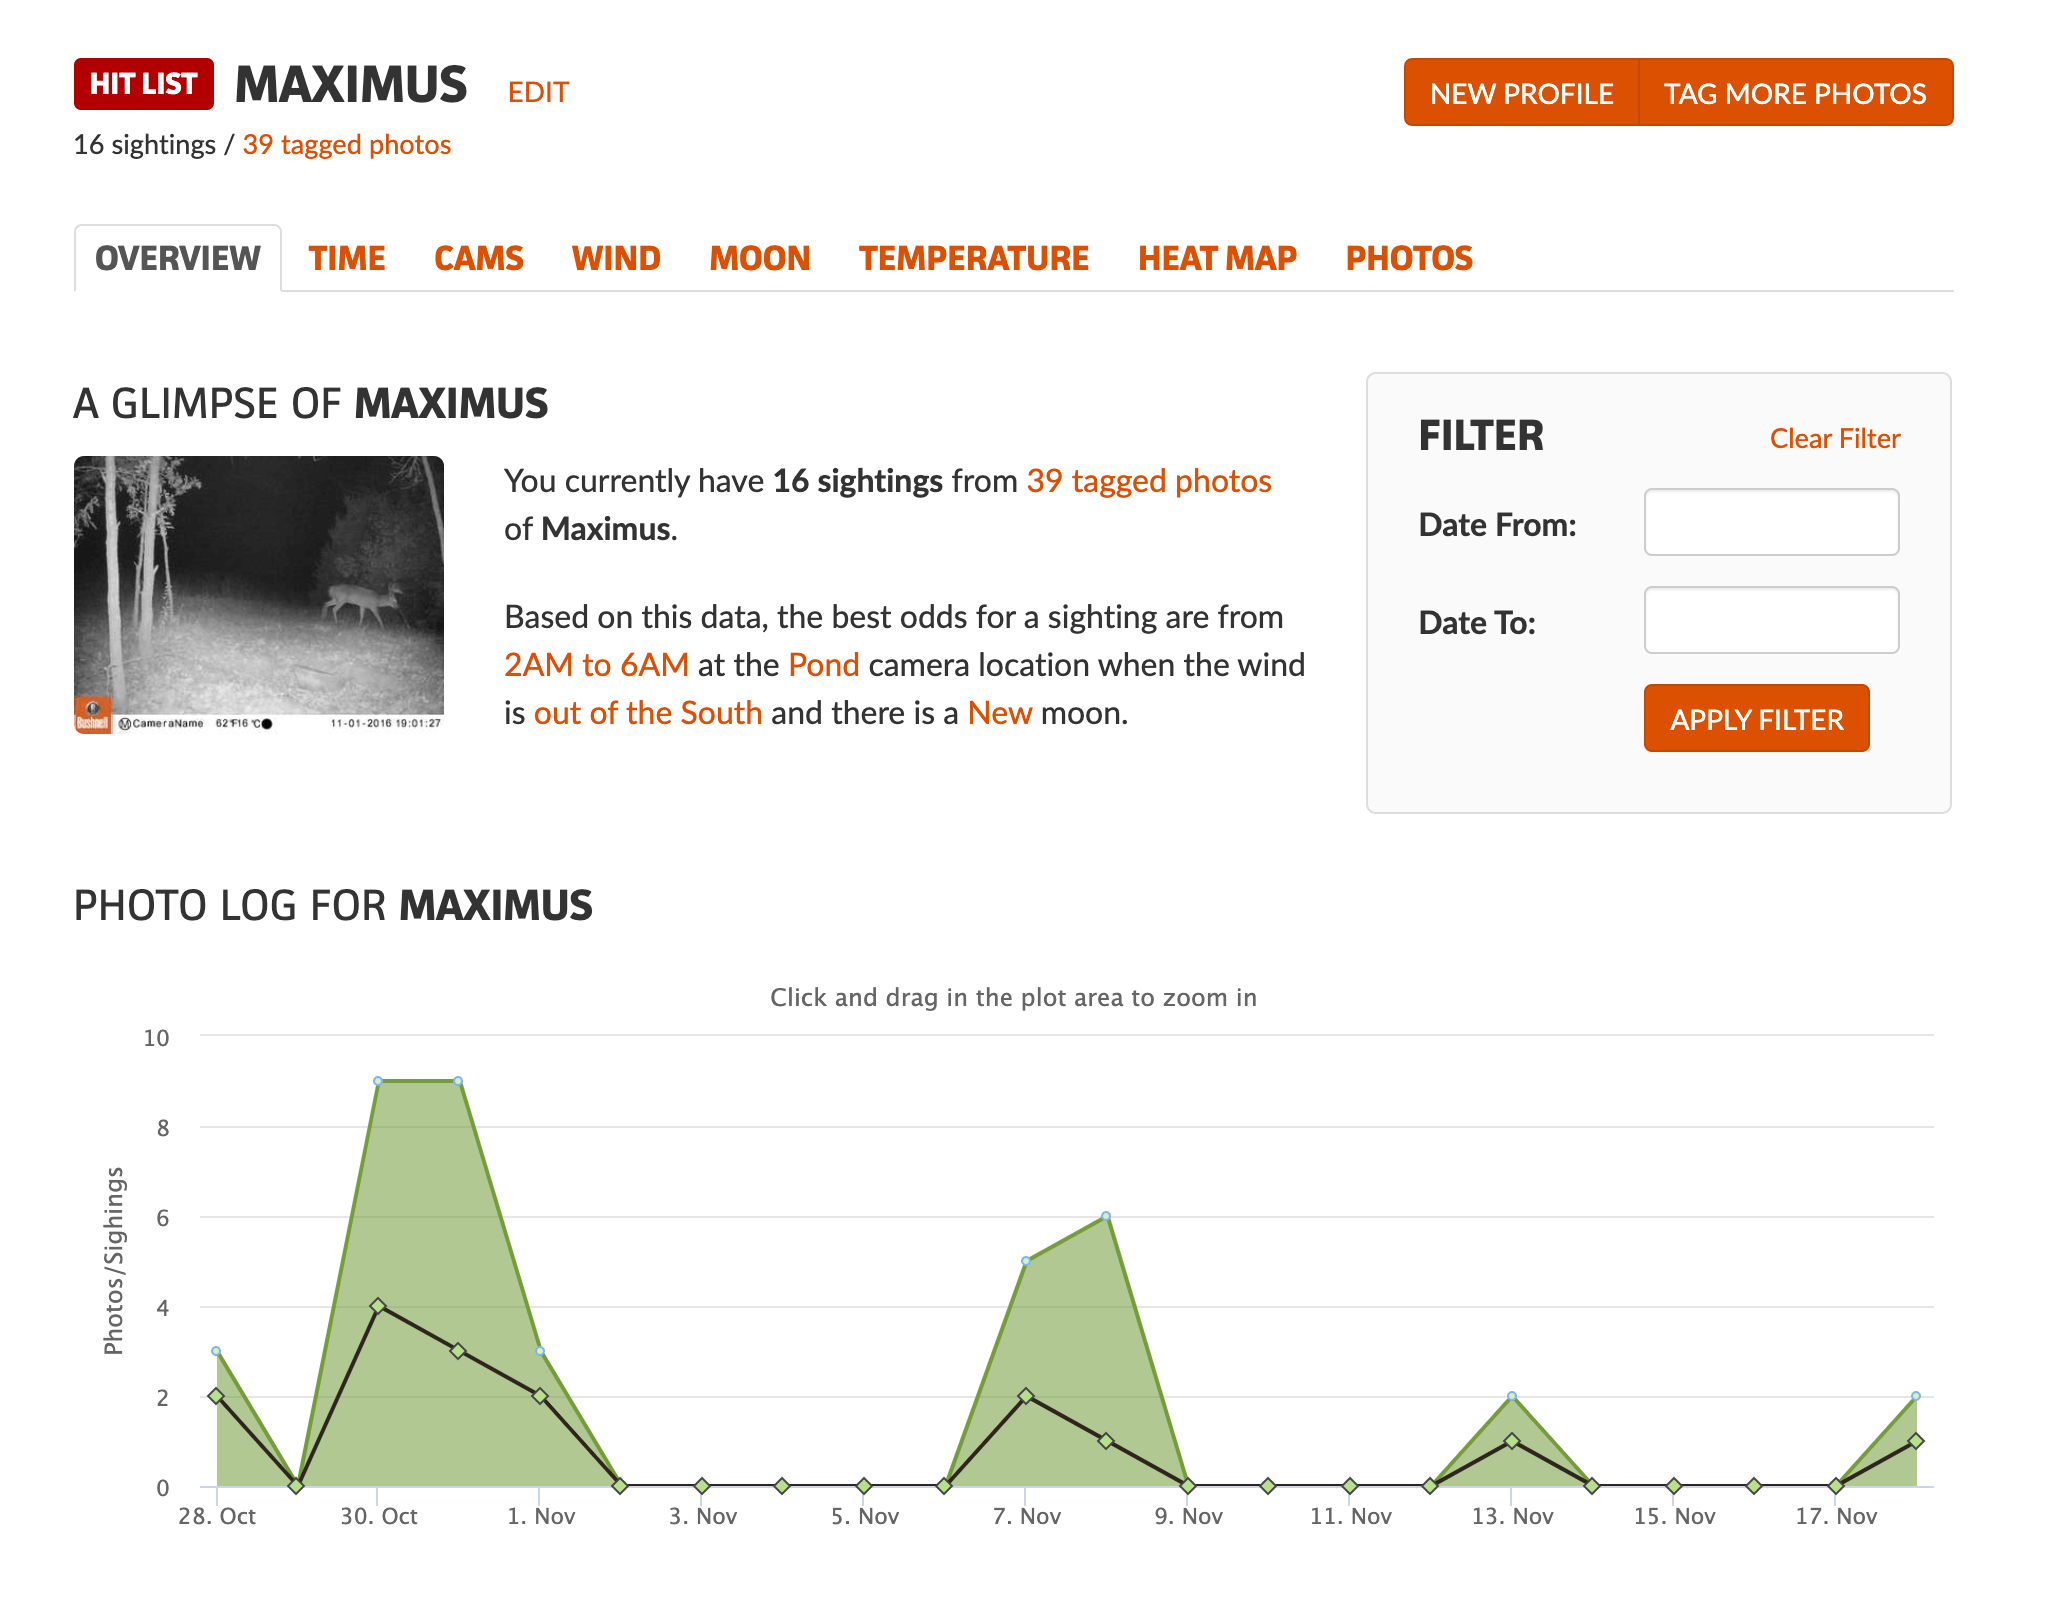 Profile of animal showing sightings vs the number of photos.